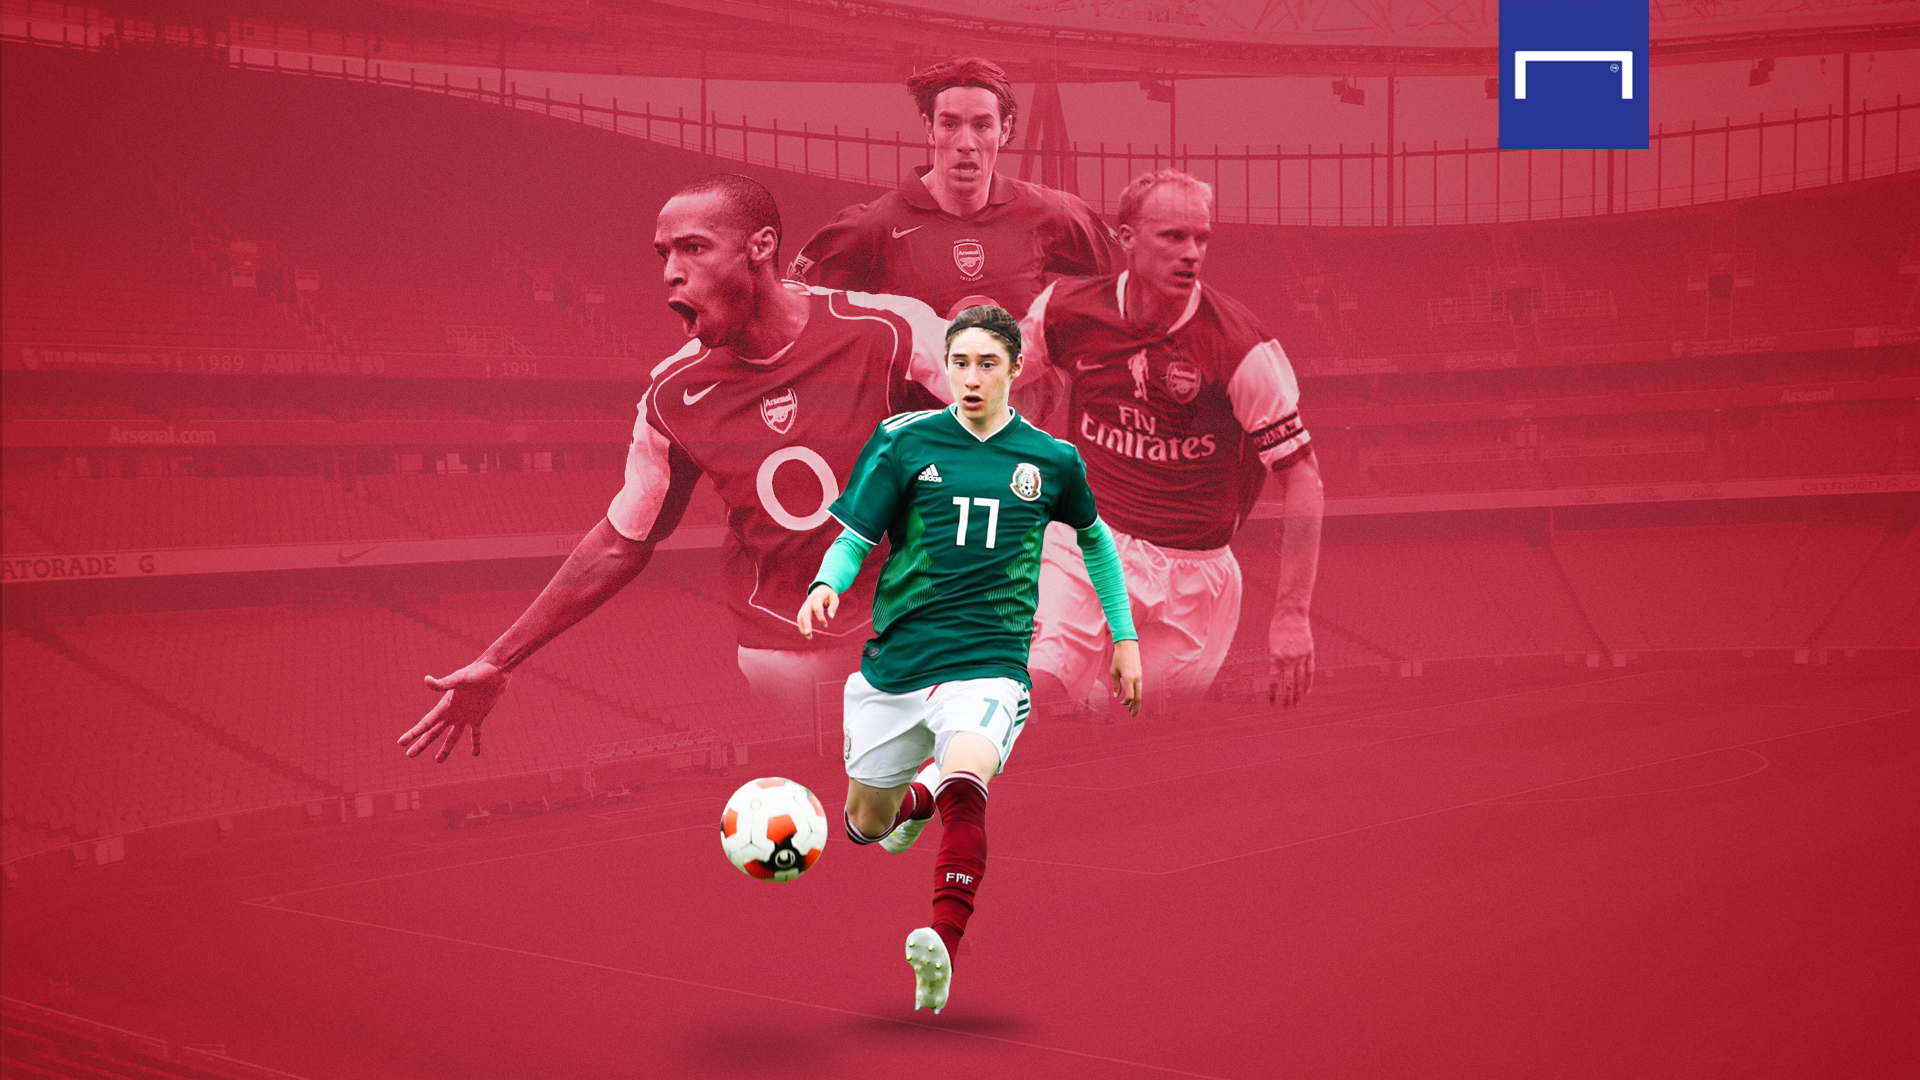 'I want to be an Arsenal legend' - Mexican youth star Flores reveals Gunners dream and Saka influence